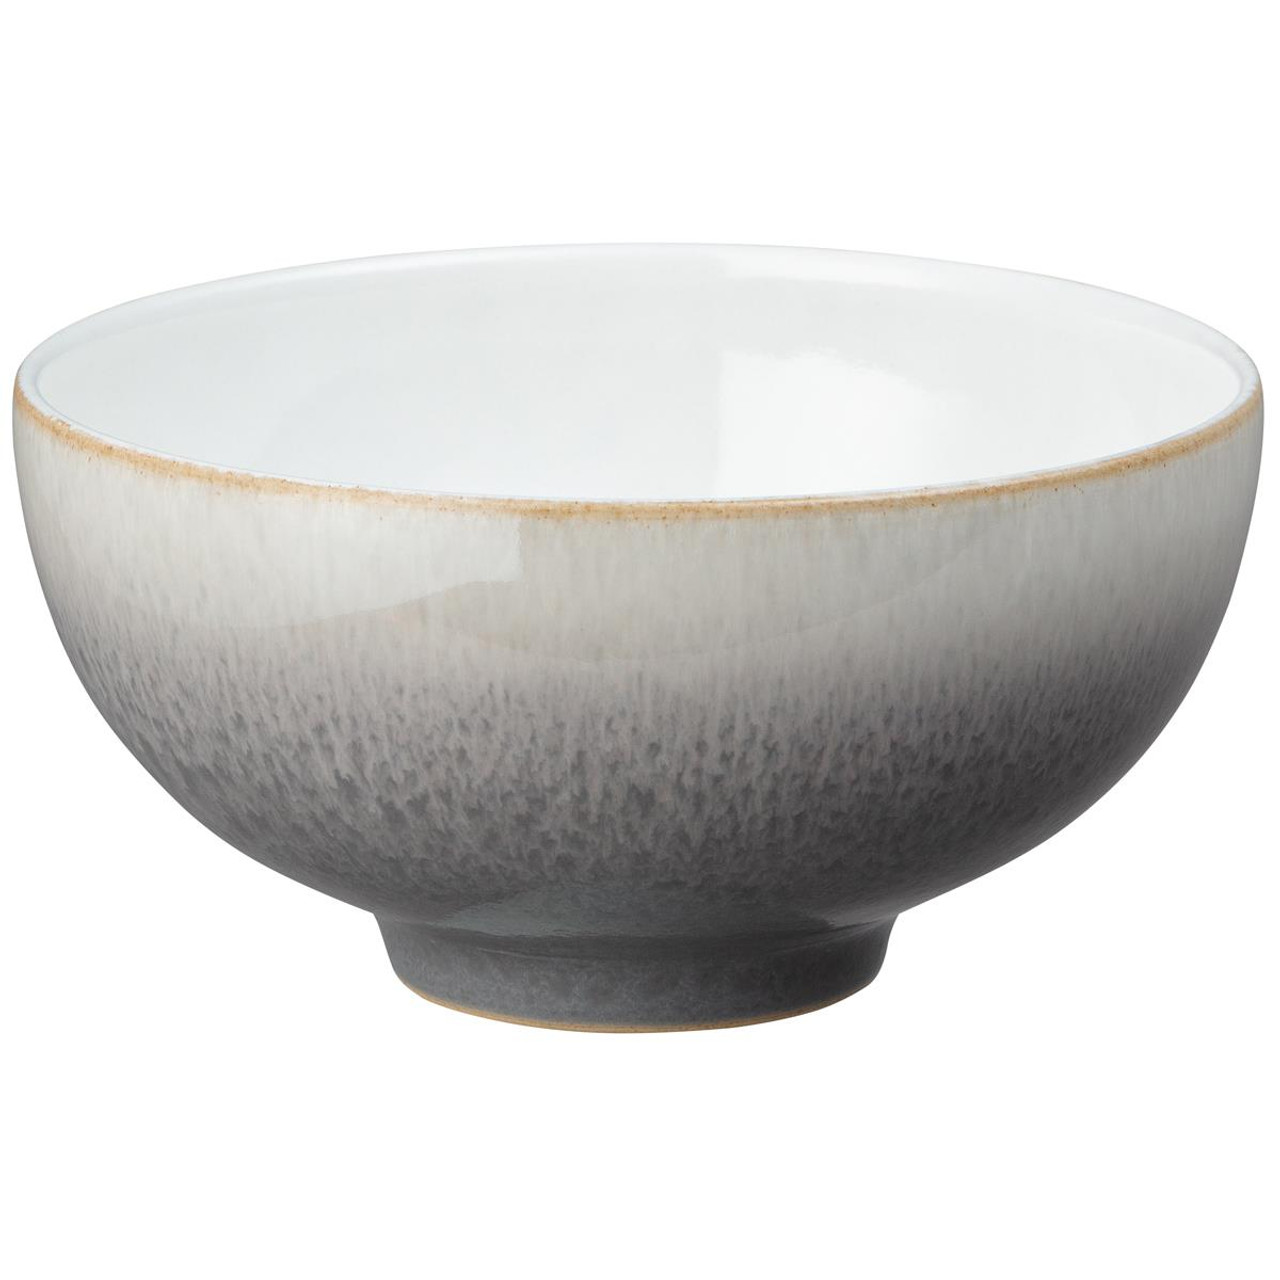 Denby Modus Ombre Small Bowl